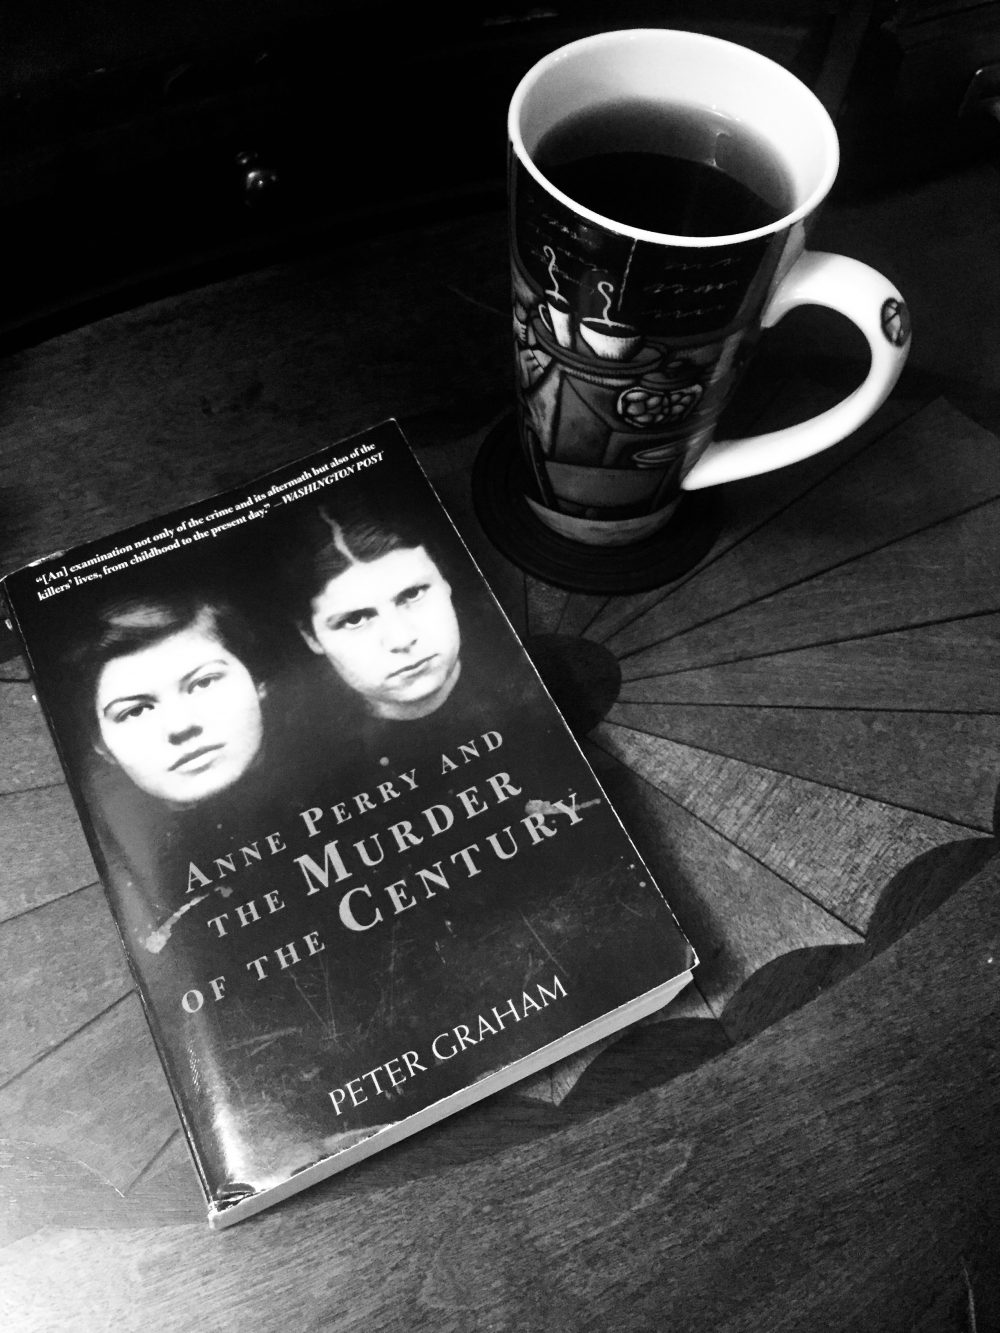 Image of the true crime book Anne Perry and the Murder of the Century and a cup of steaming chocolate mint tea